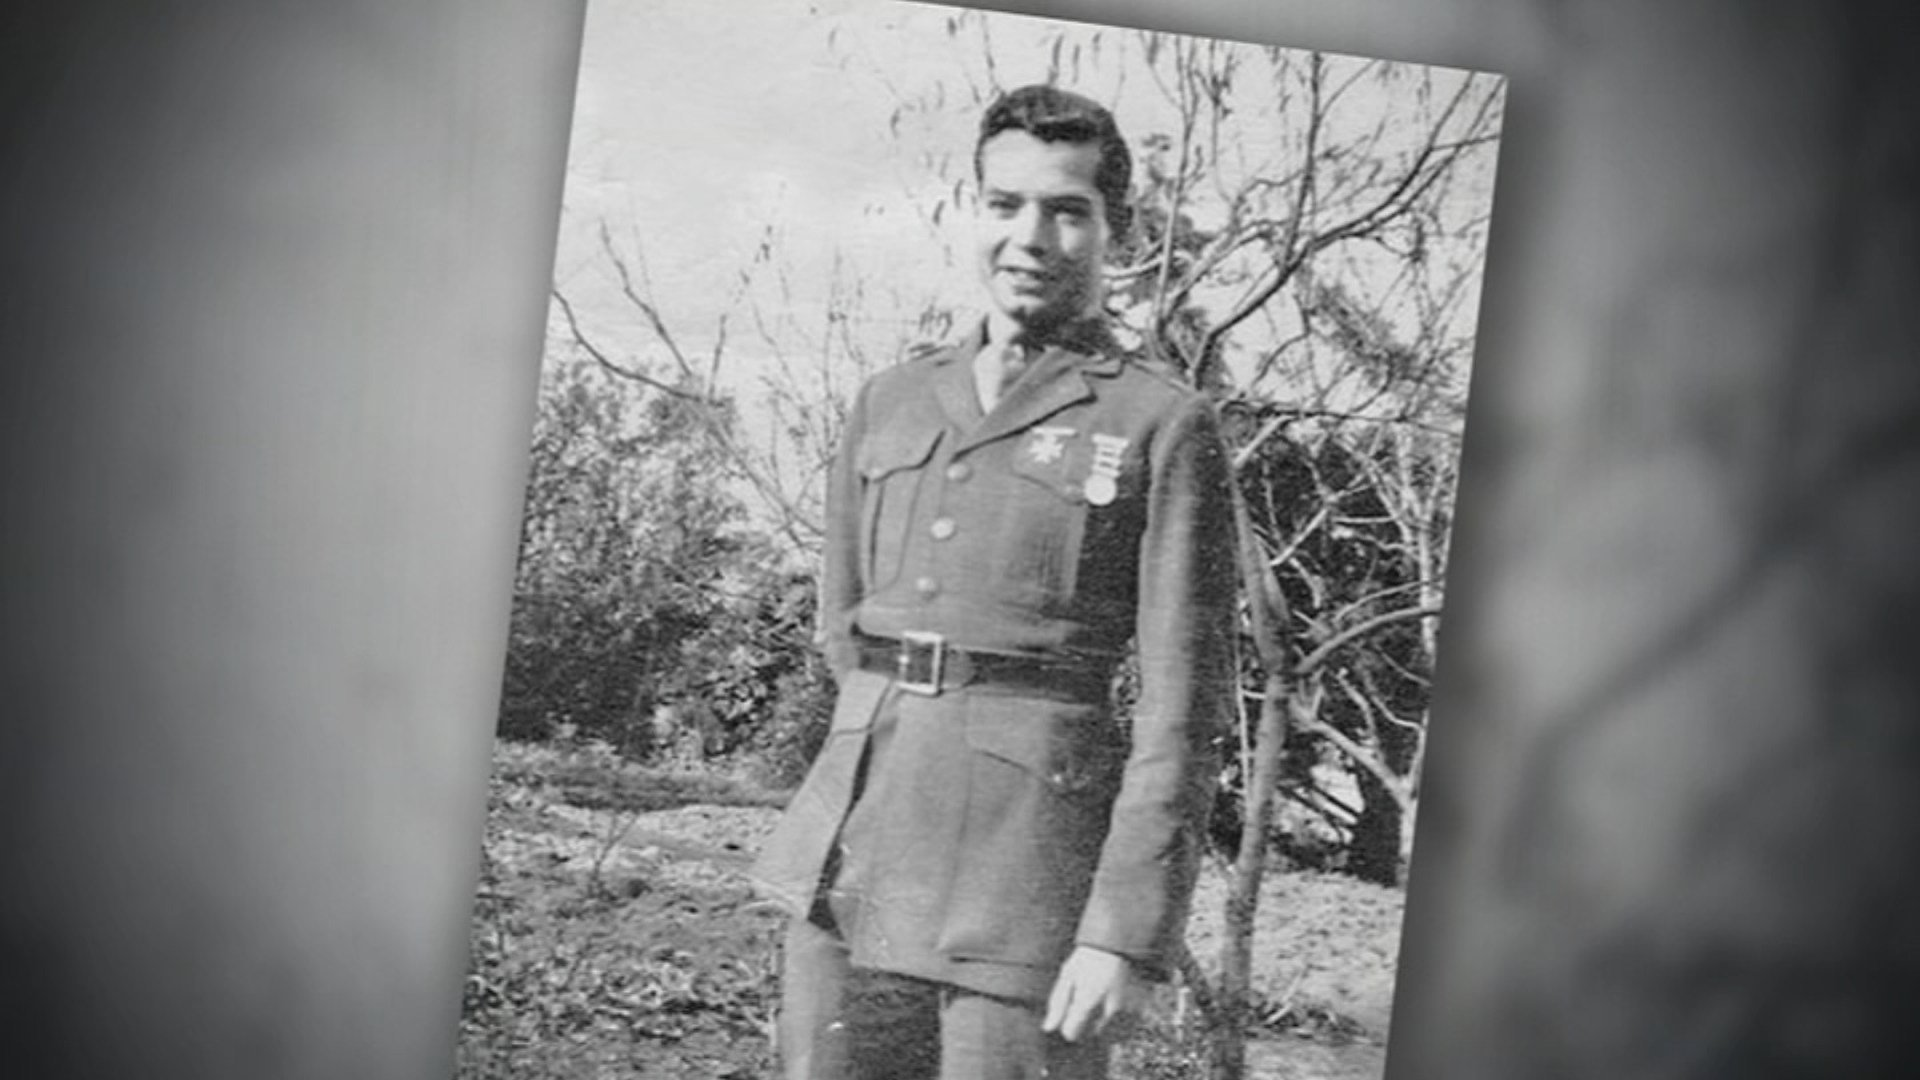 For 75 years, Private First Class Donald Tolson was presumed to be killed in action. He perished on the first day of the Battle of Tarawa on Nov. 20, 1943 alongside nearly 1,000 other casualties storming the beaches of the Japanese island. (KCTV5)